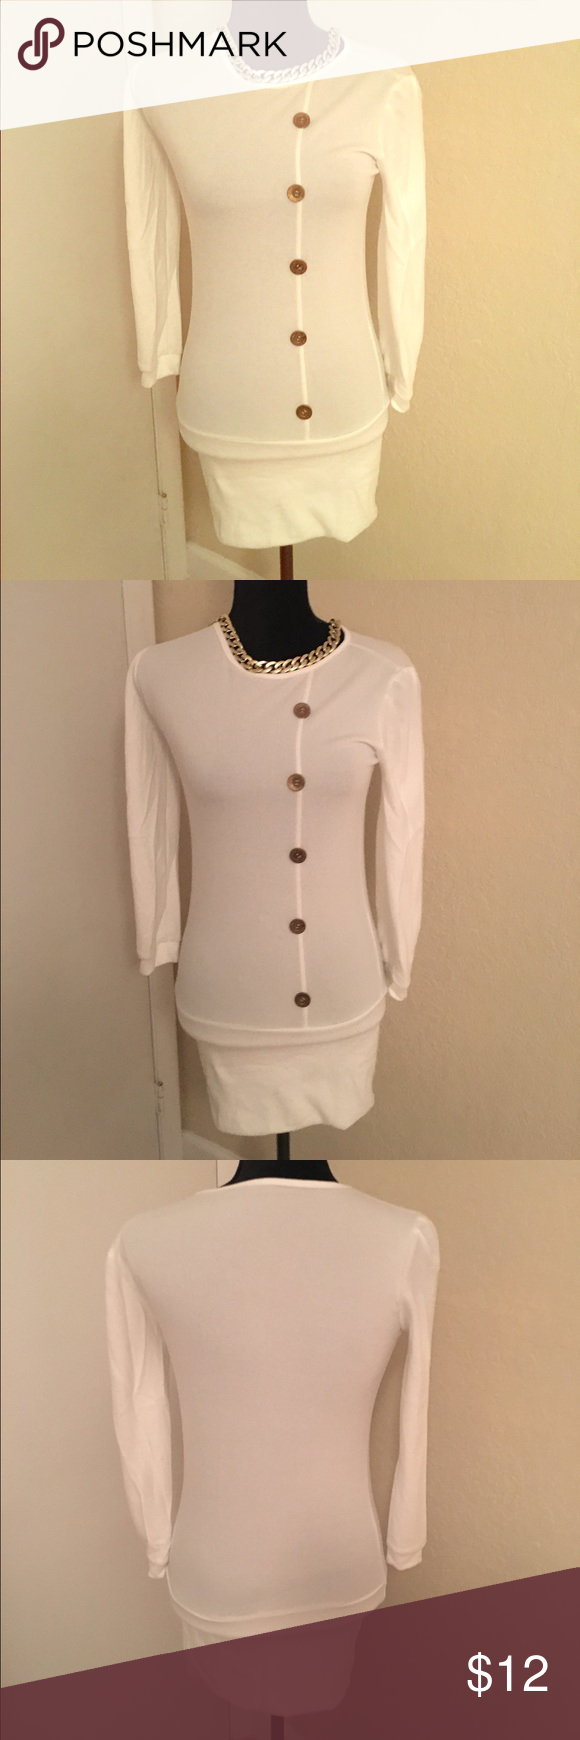 Mini Dress Off White Mini Dress with Gold Buttons. Chain does not come with Dress! 30 inches long, and 100% polyester! No offers! Price is already marked low! Dresses Mini